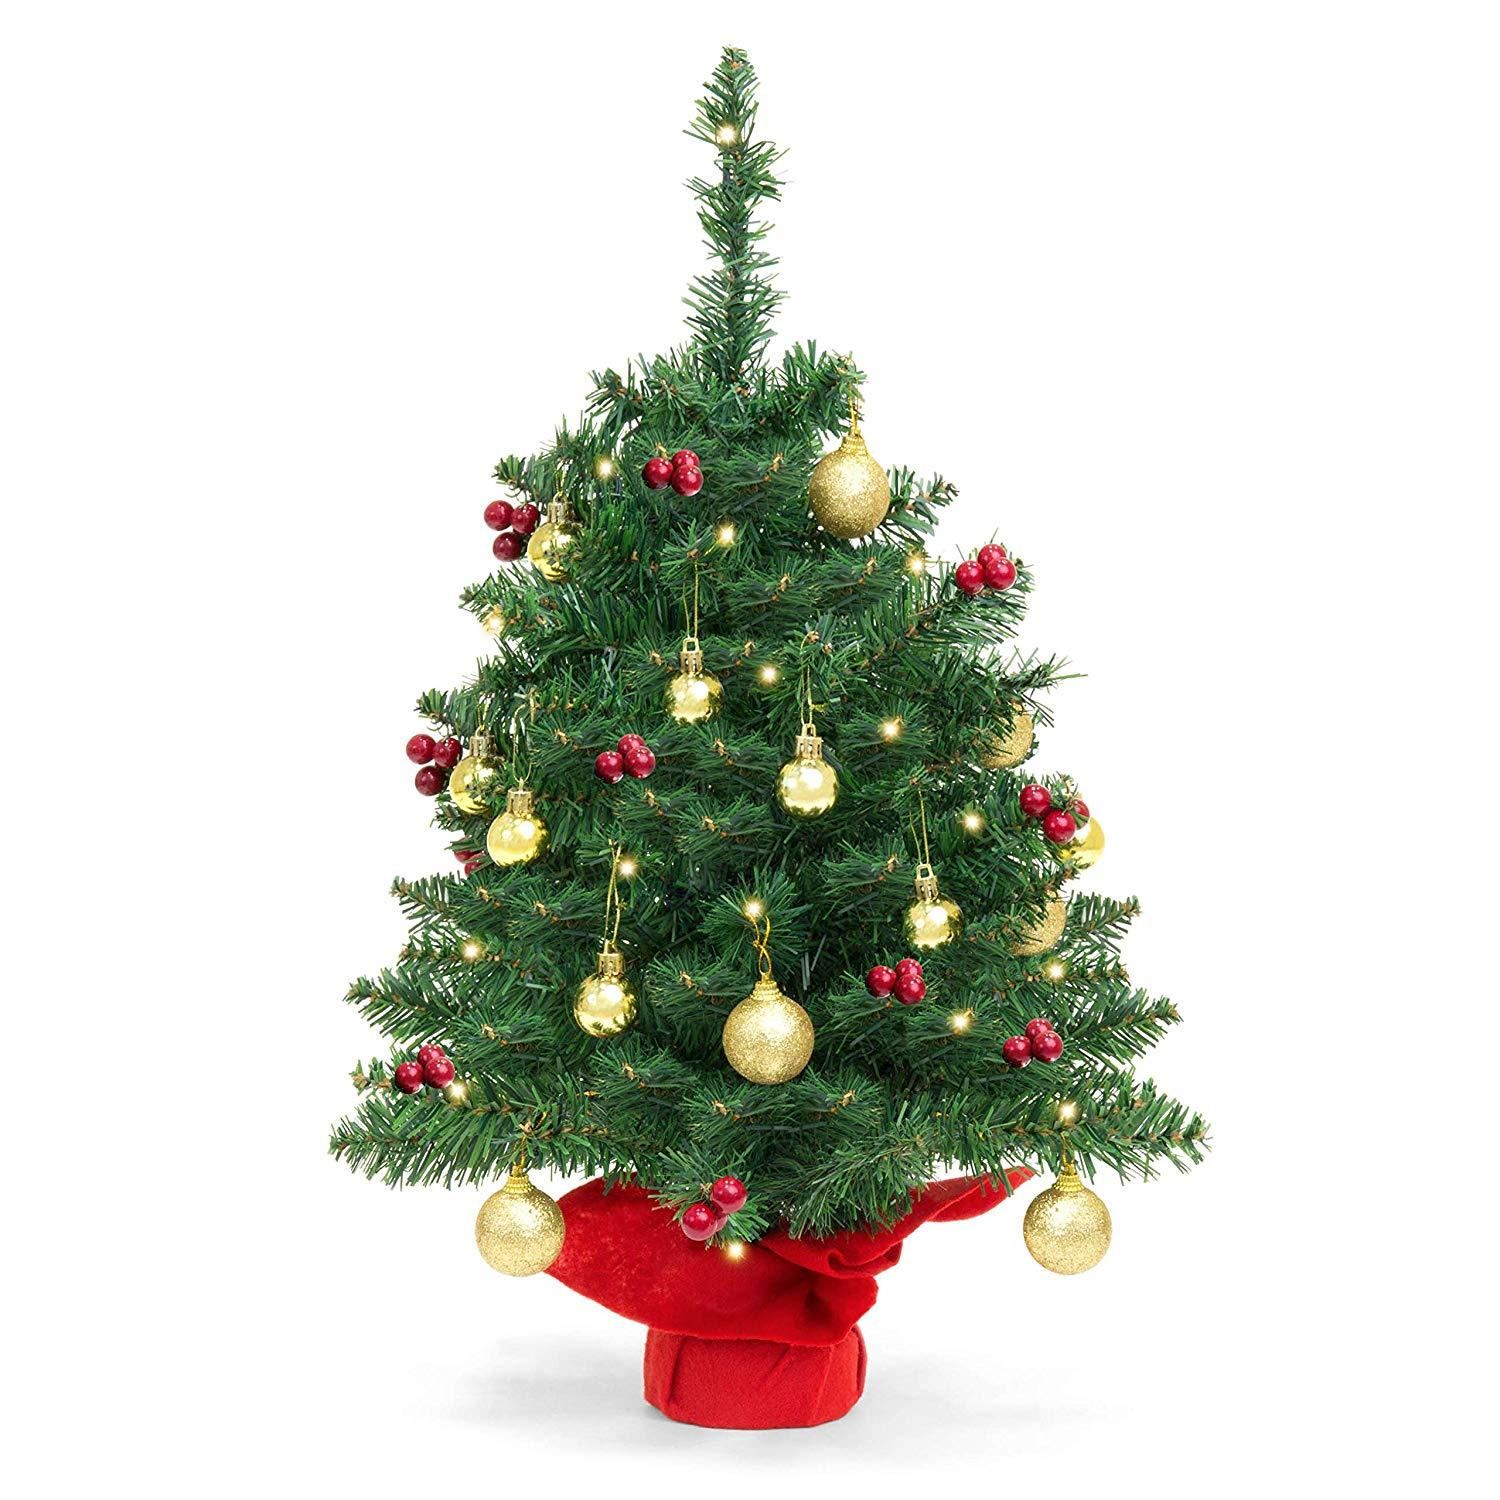 22 inch Artificial Christmas Tree Decor